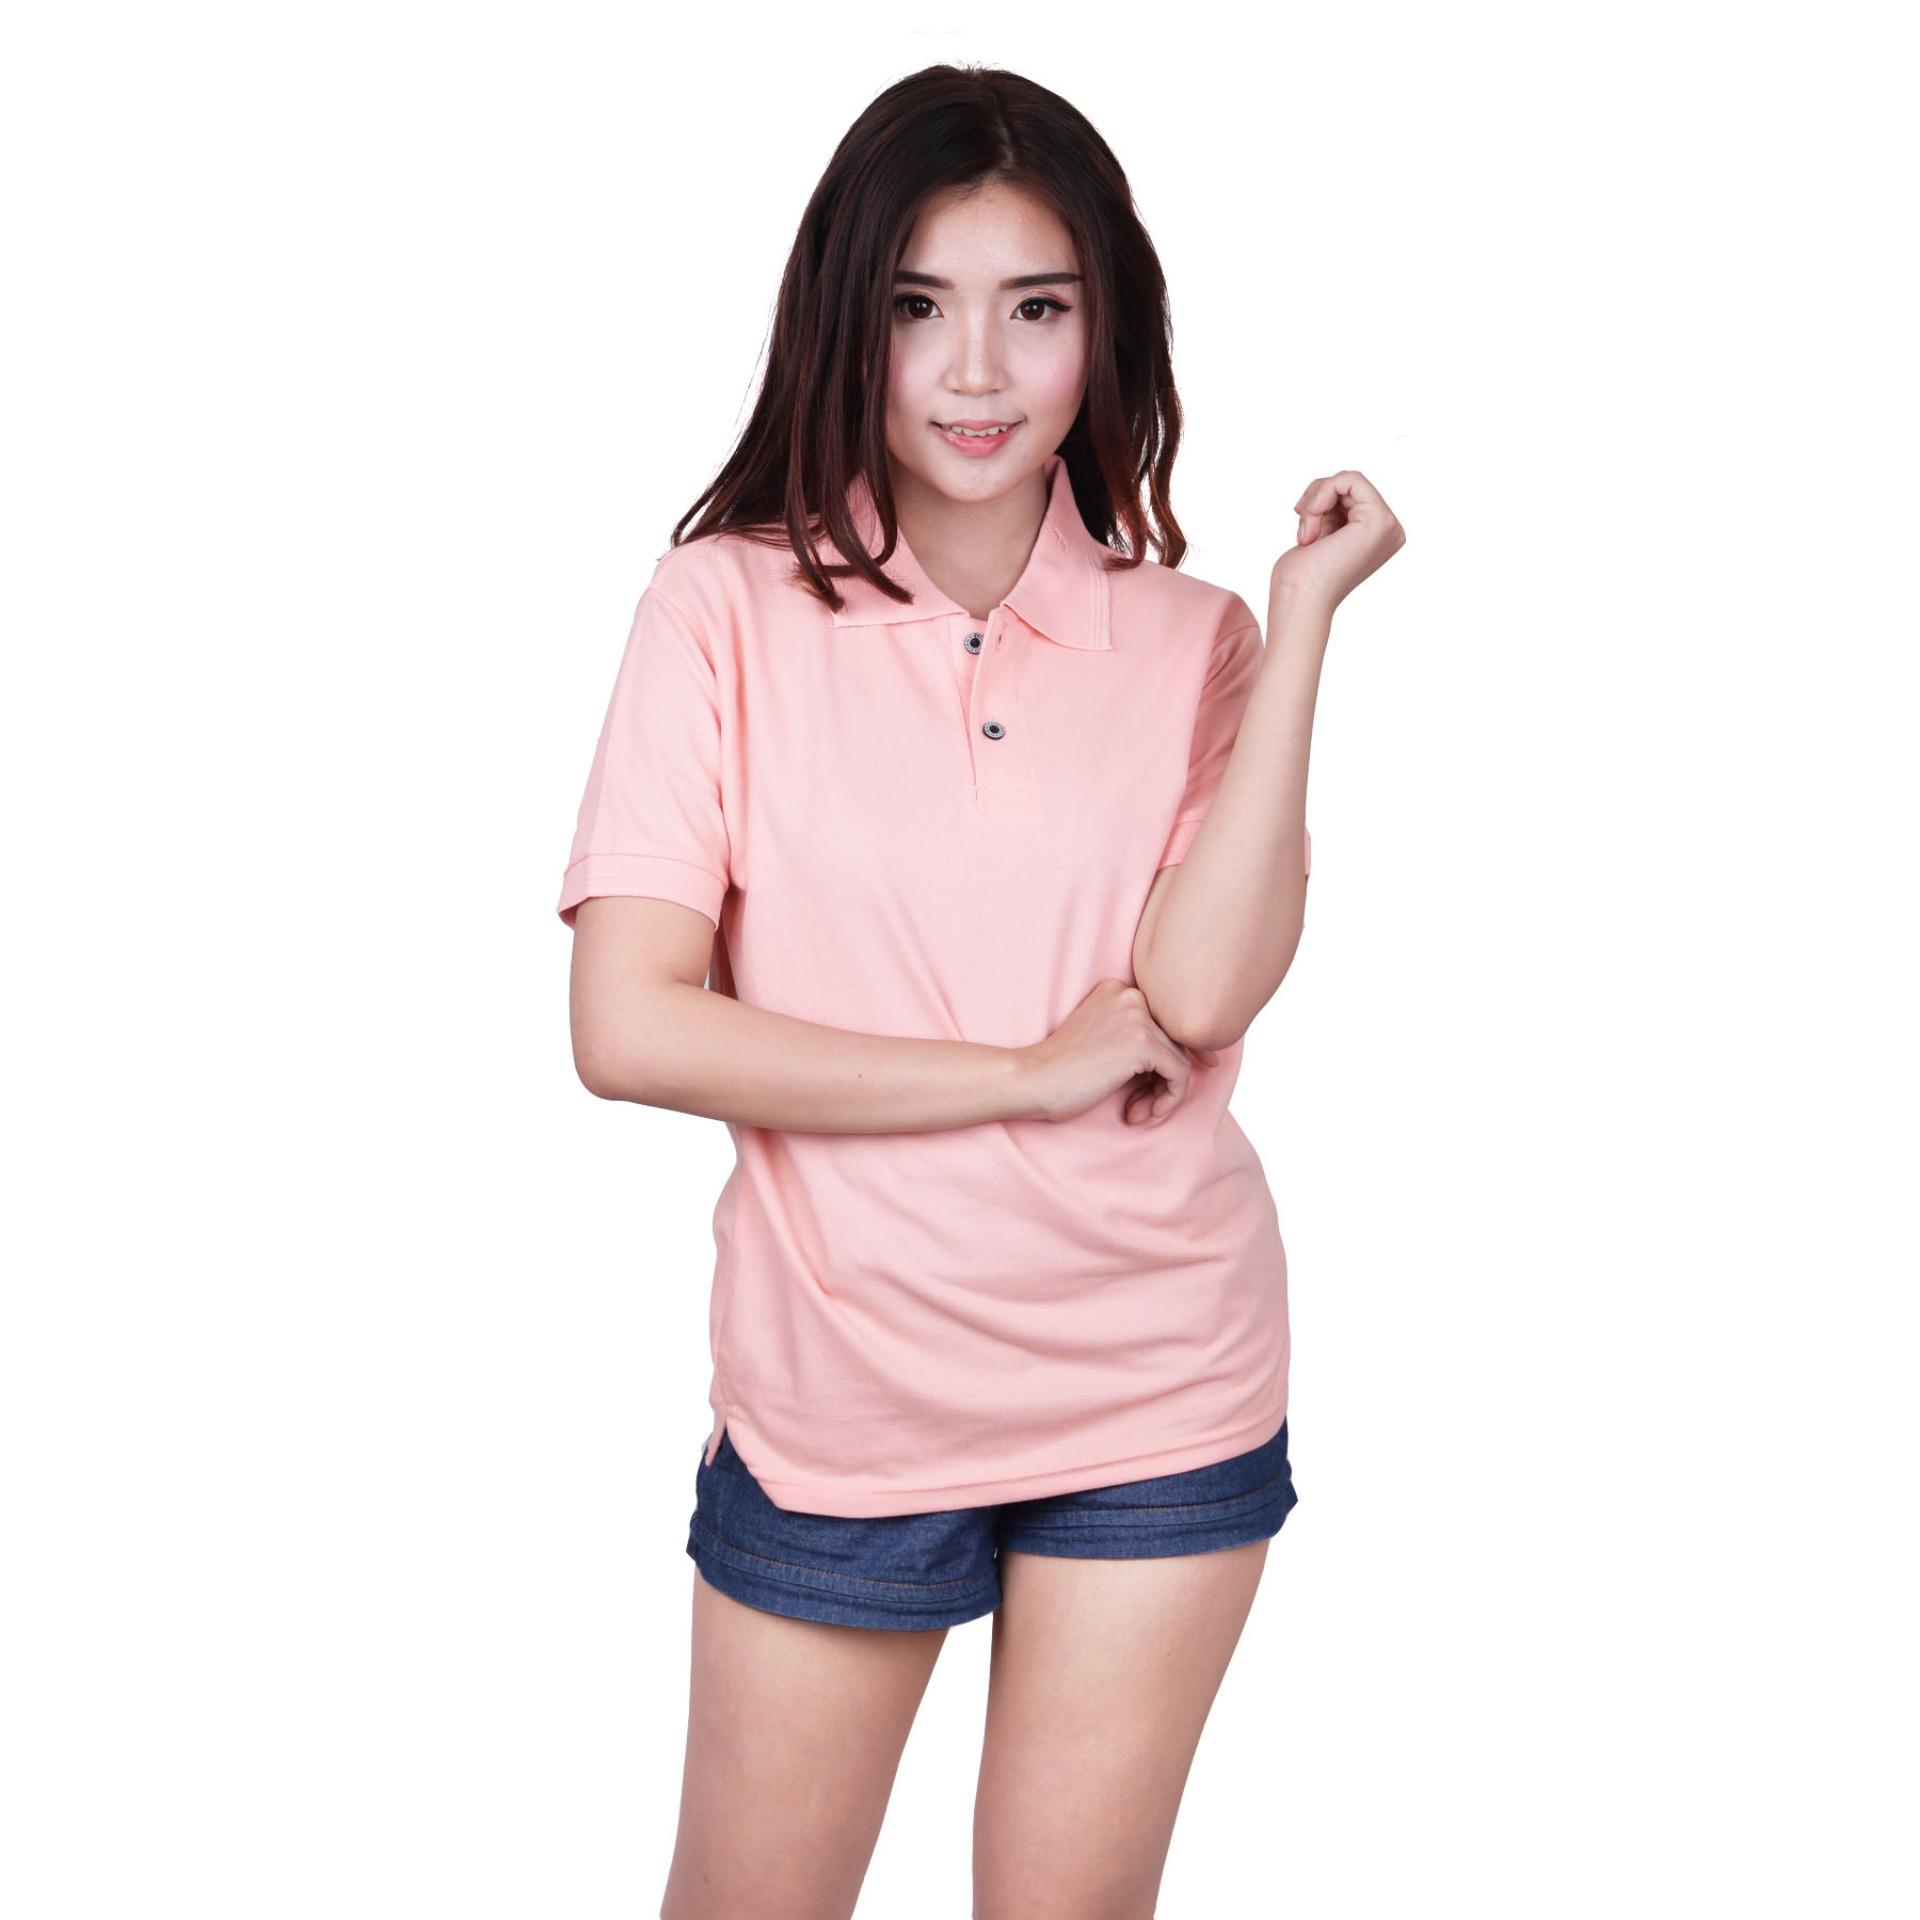 Jual Quincy Label Women Polo Shirt Peach Branded Original